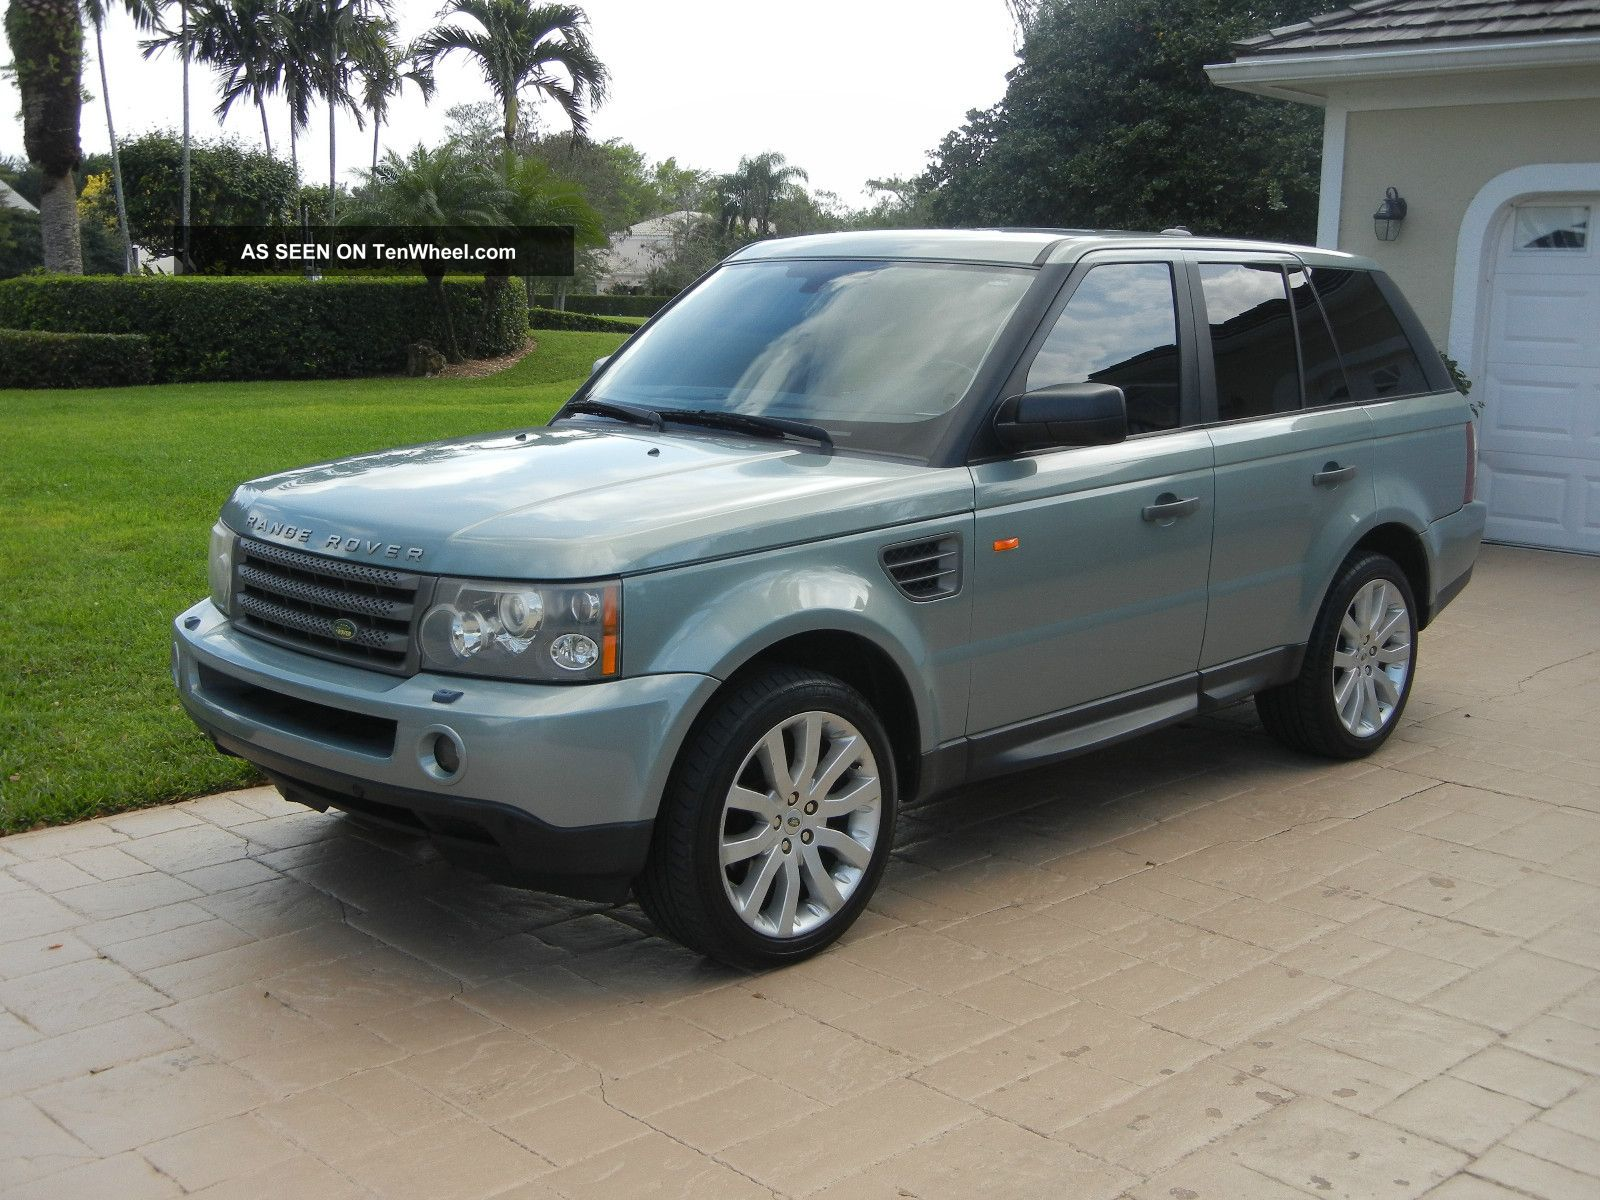 2008 range rover hse sport 4 door luxury sport utility. Black Bedroom Furniture Sets. Home Design Ideas